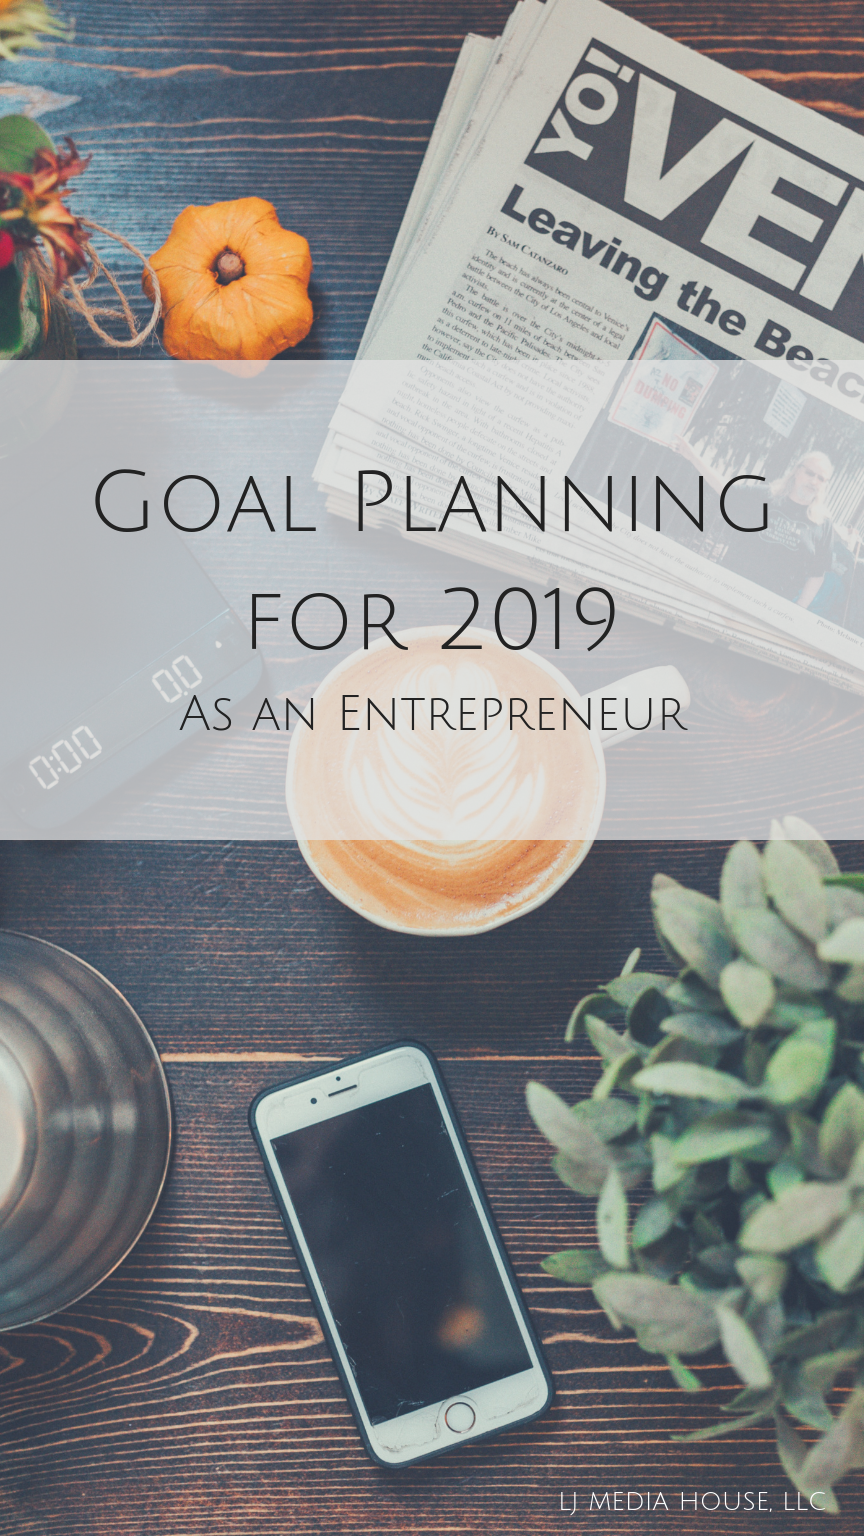 Goal Planning for 2019 as an Entrepreneur - LJ Media House